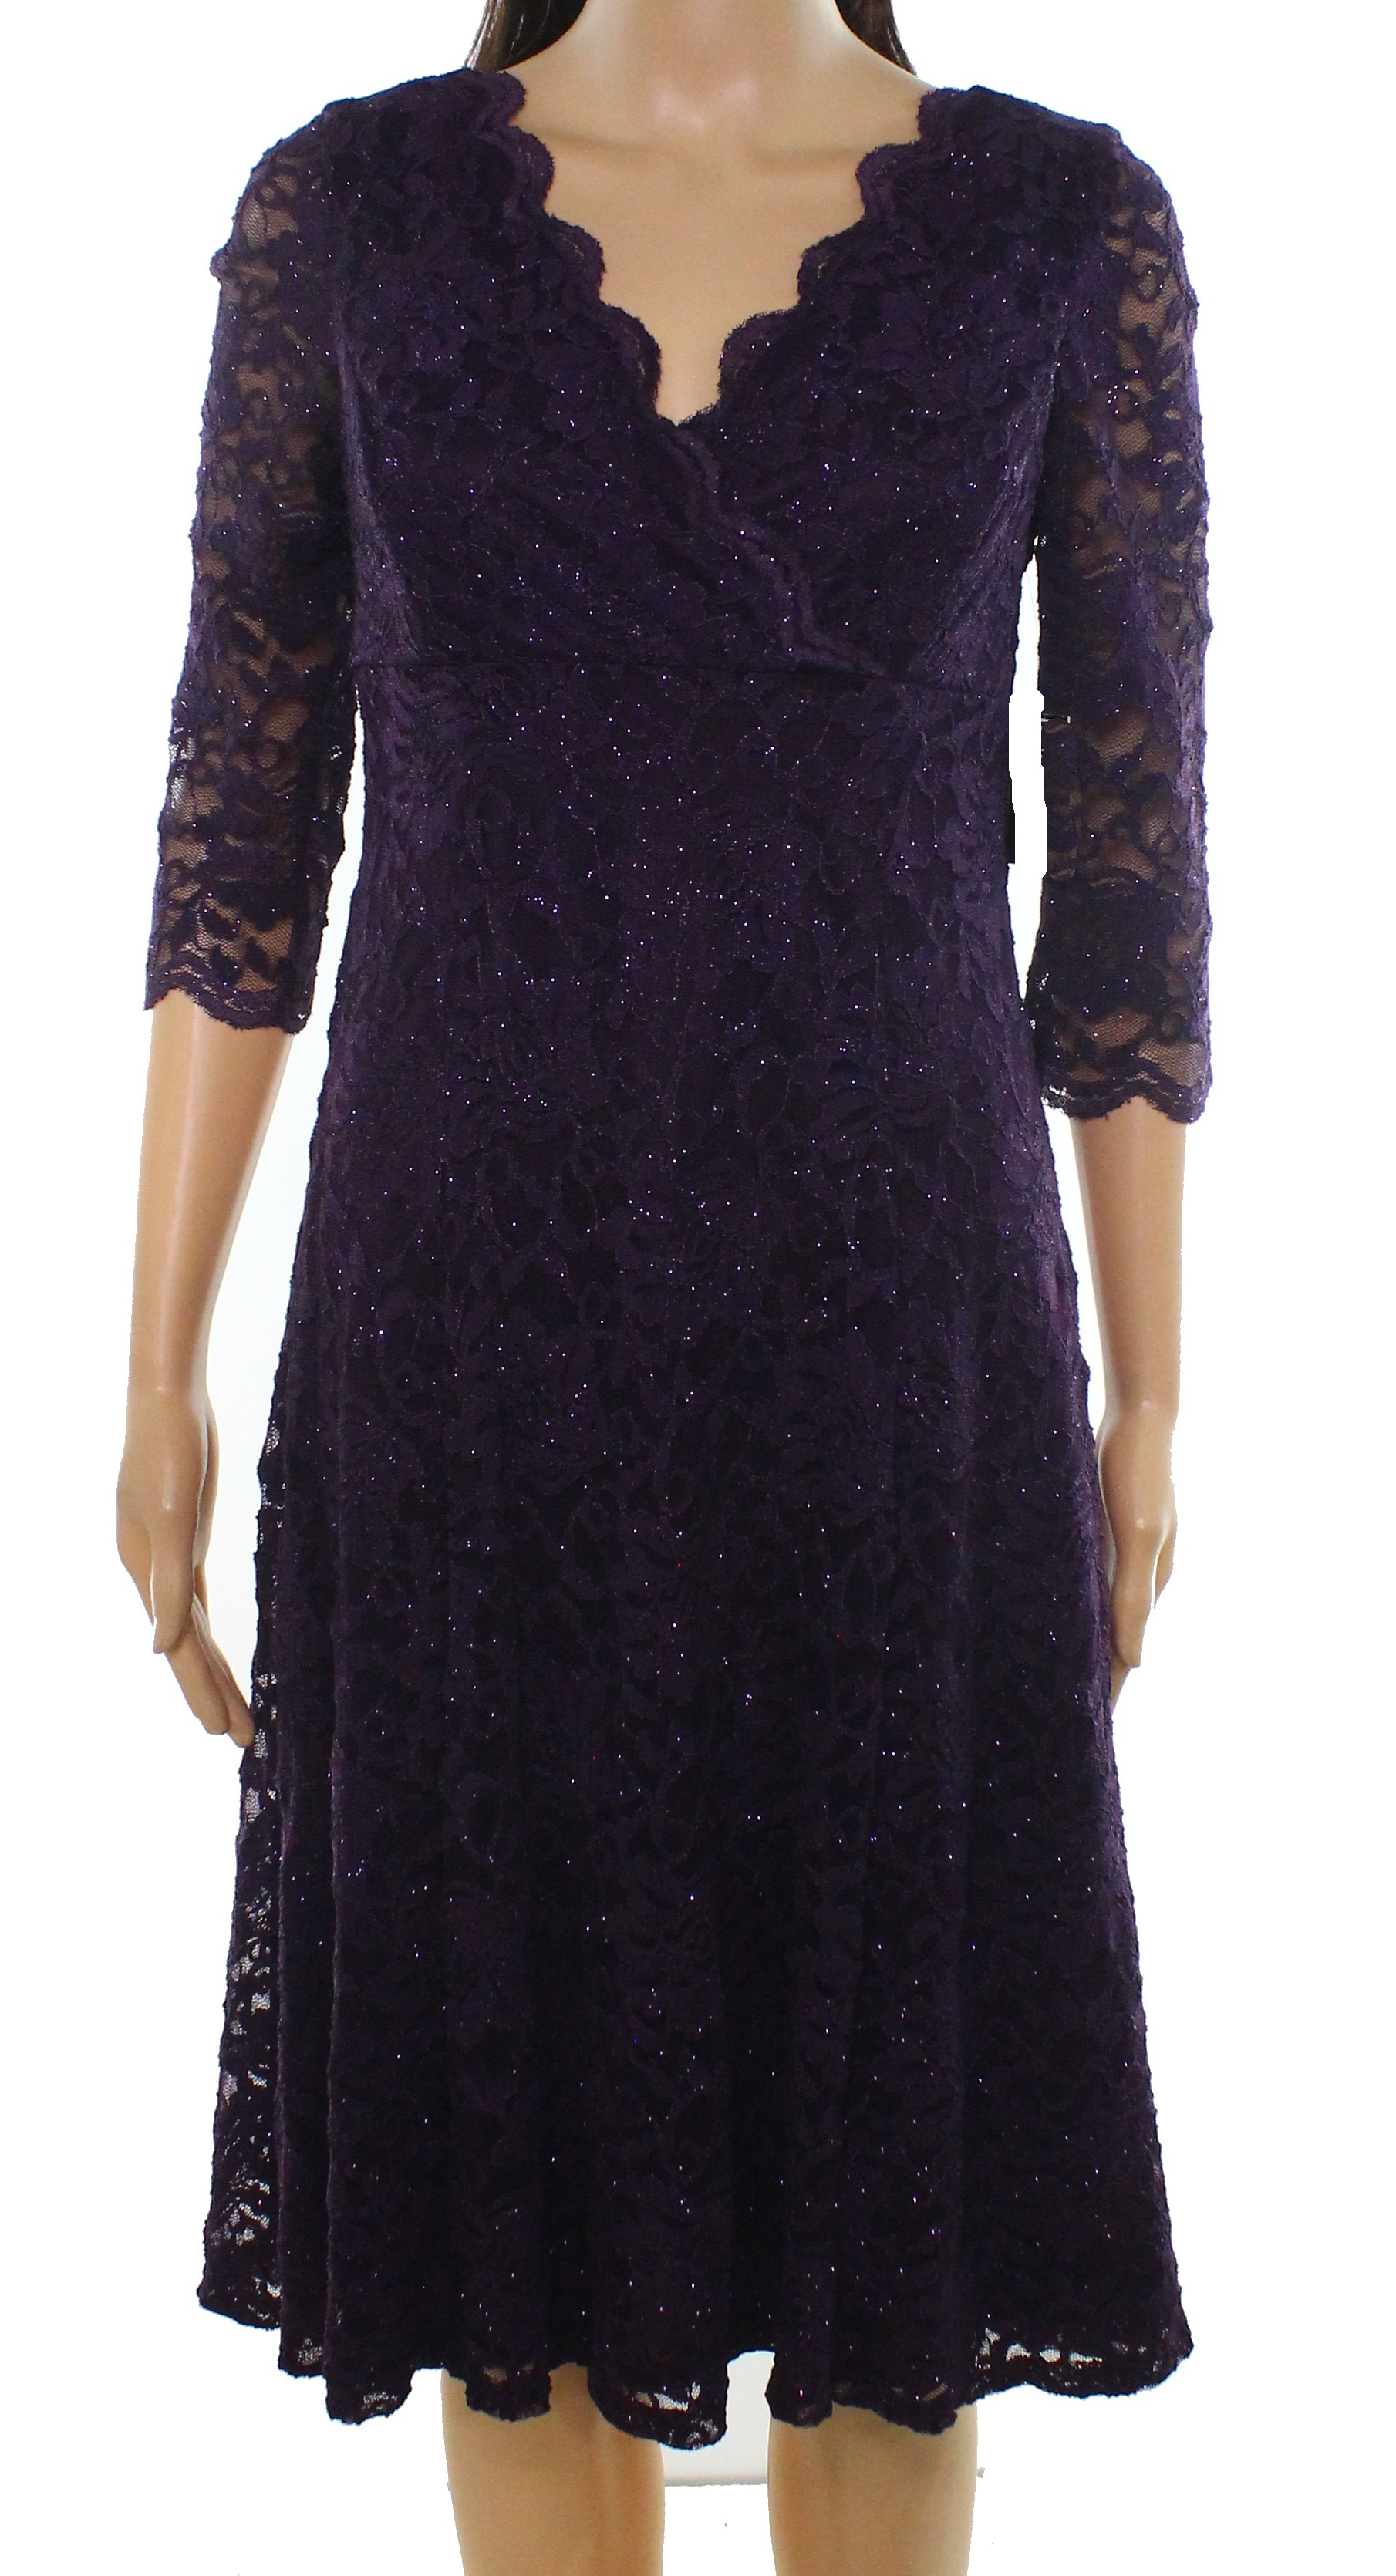 0d33678e1cfb Jessica Howard NEW Purple Women's Size 8P Petite Lace Shimmer Dress $109  #391